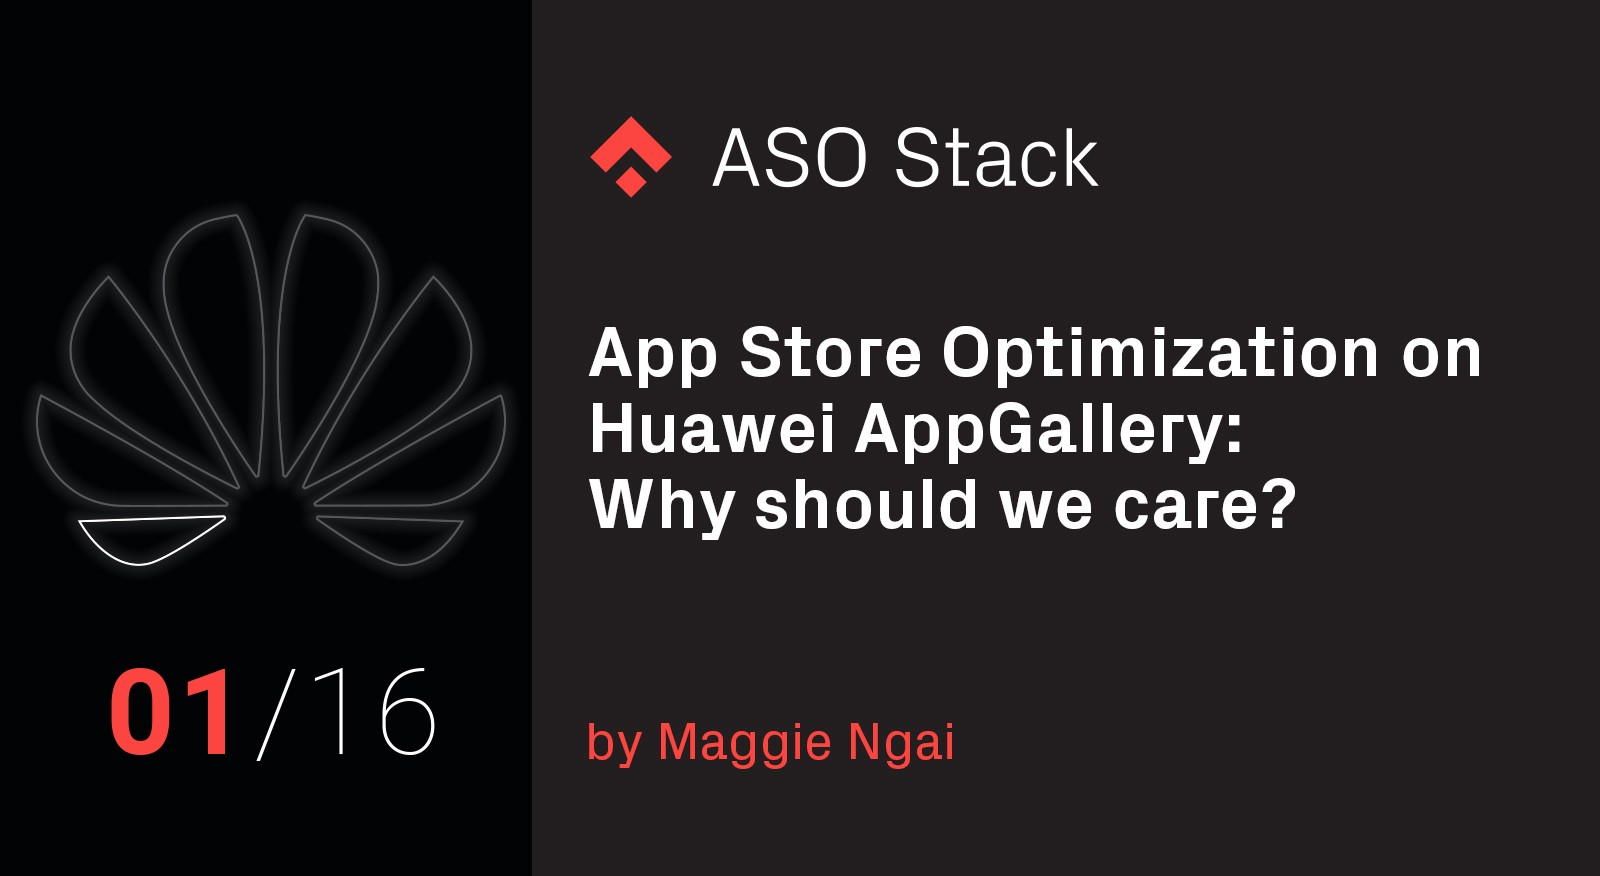 App Store Optimization on Huawei's AppGallery App Store- Why Should We Care?